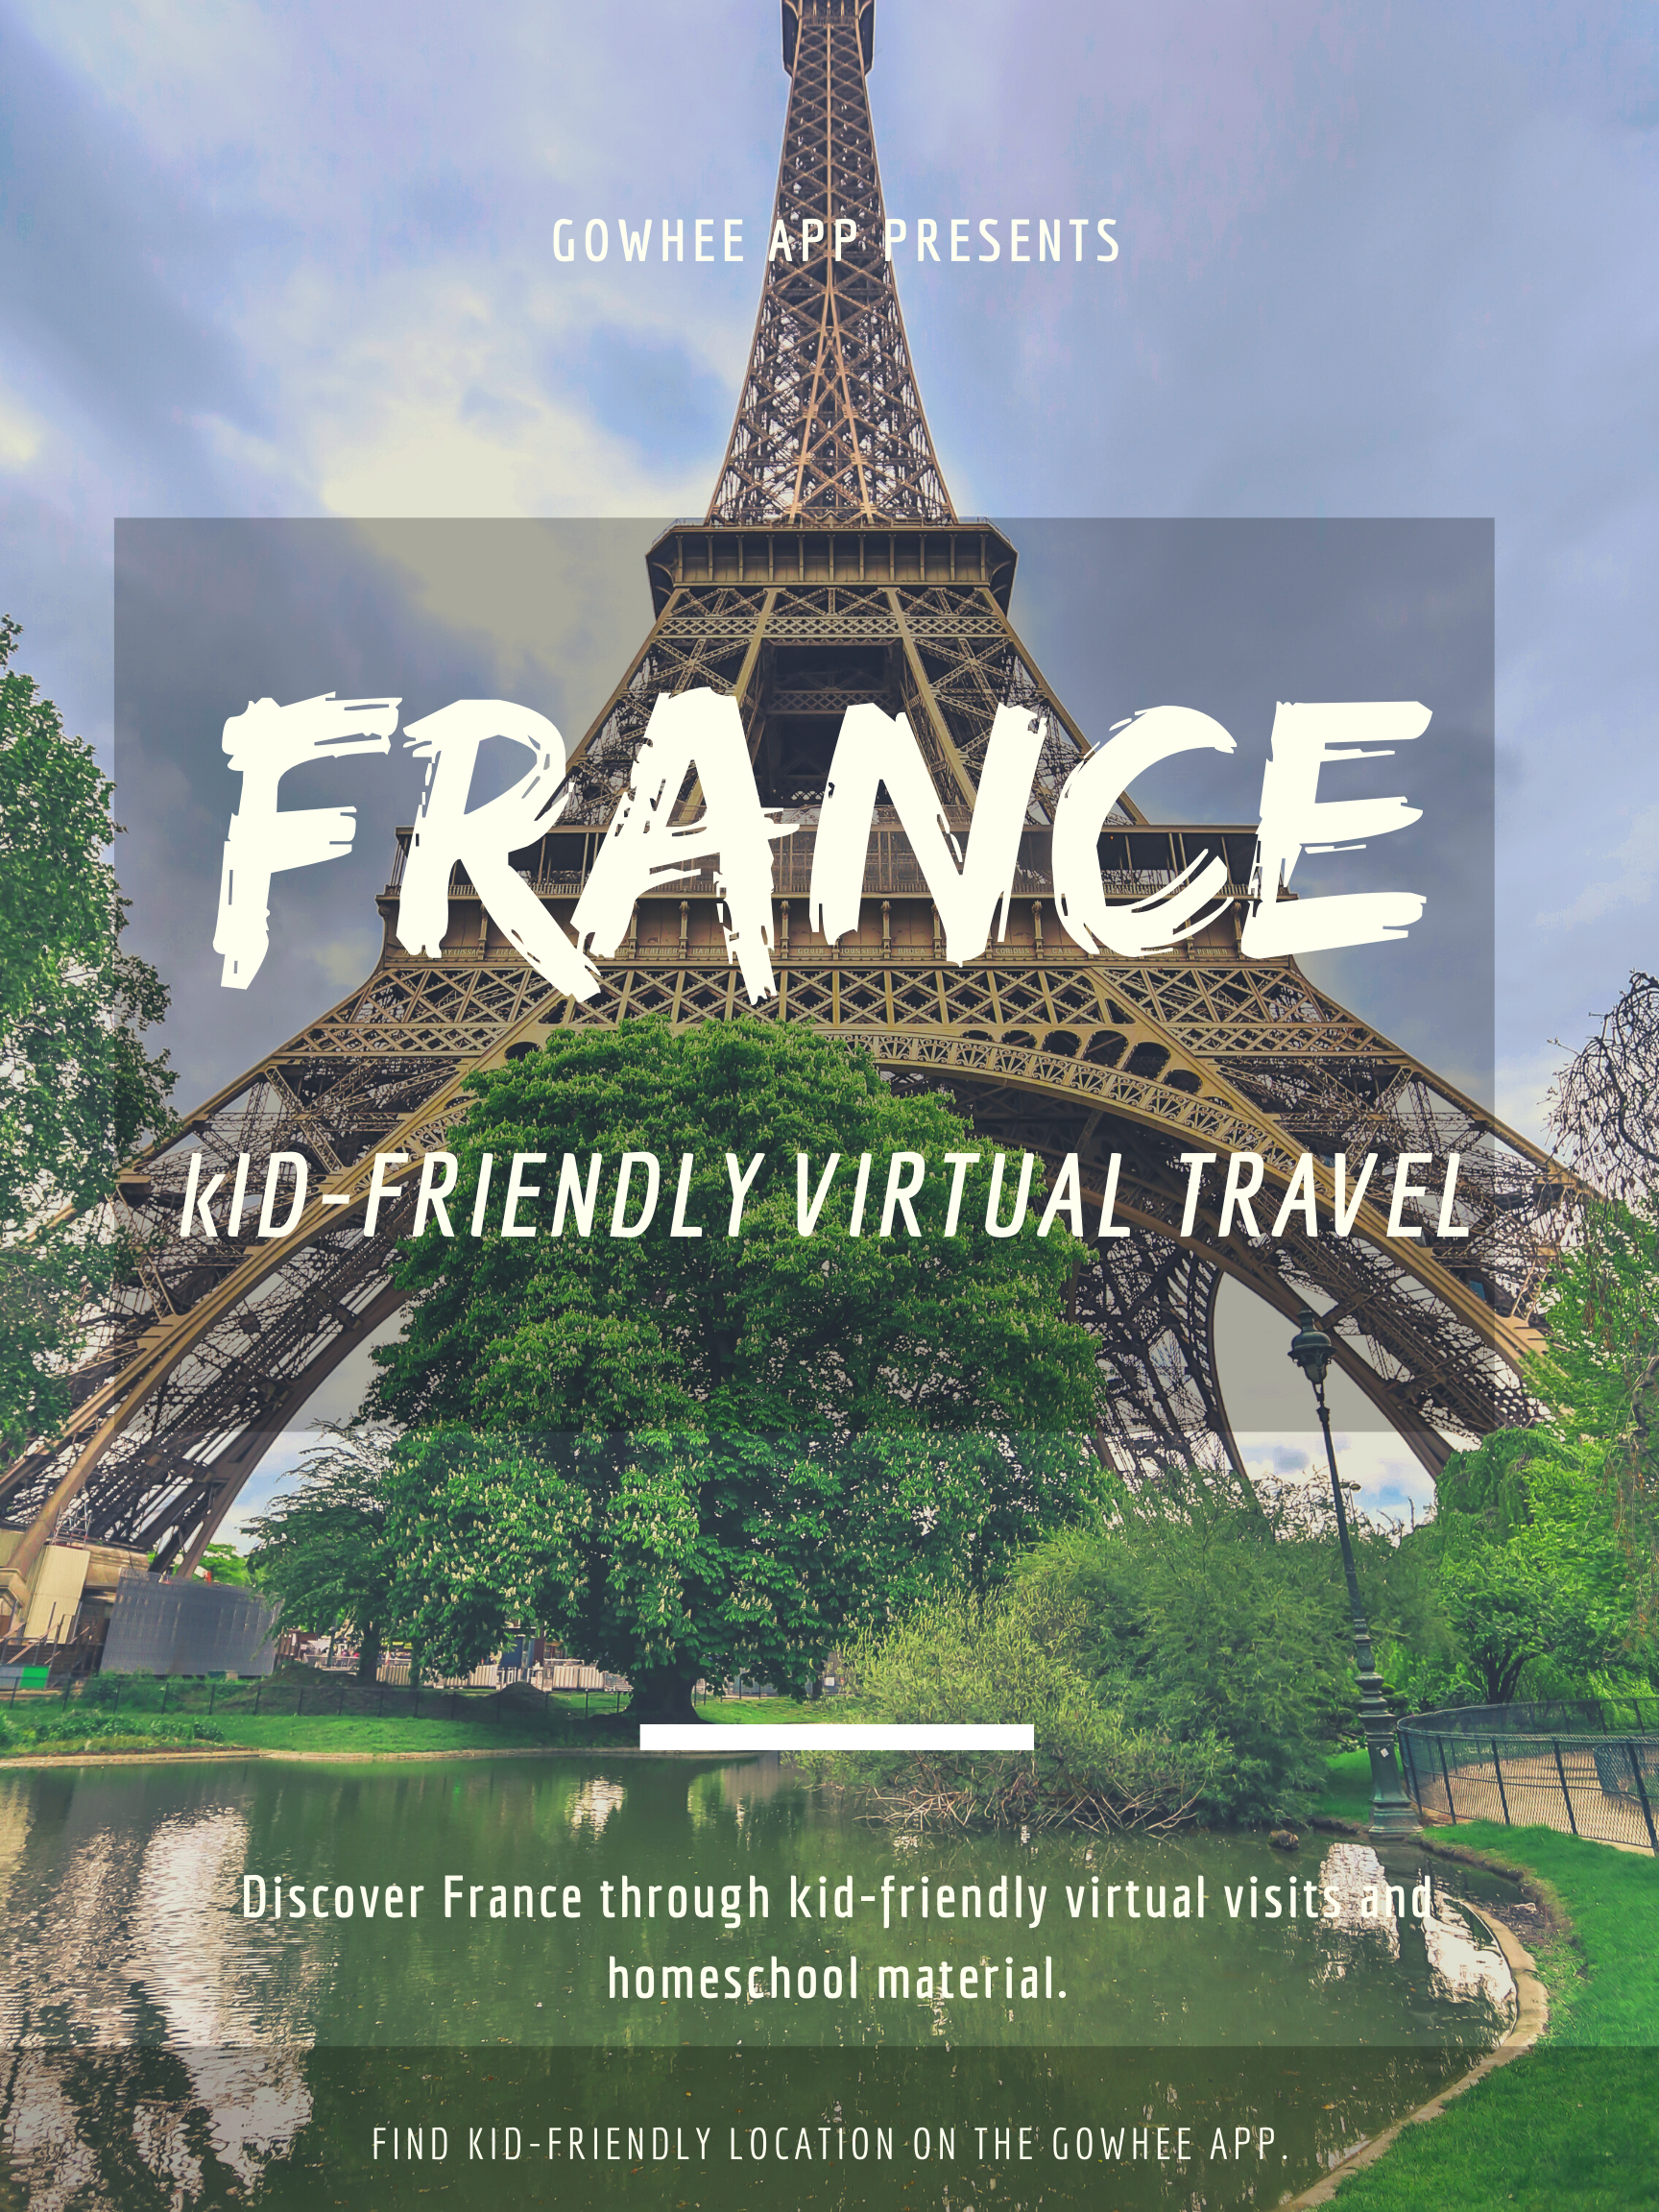 Kid-Friendly Virtual Travel - Homeschool, worldschool activities to learn about india. #homescool #worldschool #kidfriendly #virtualtravel #France #Paris #kidsactivities